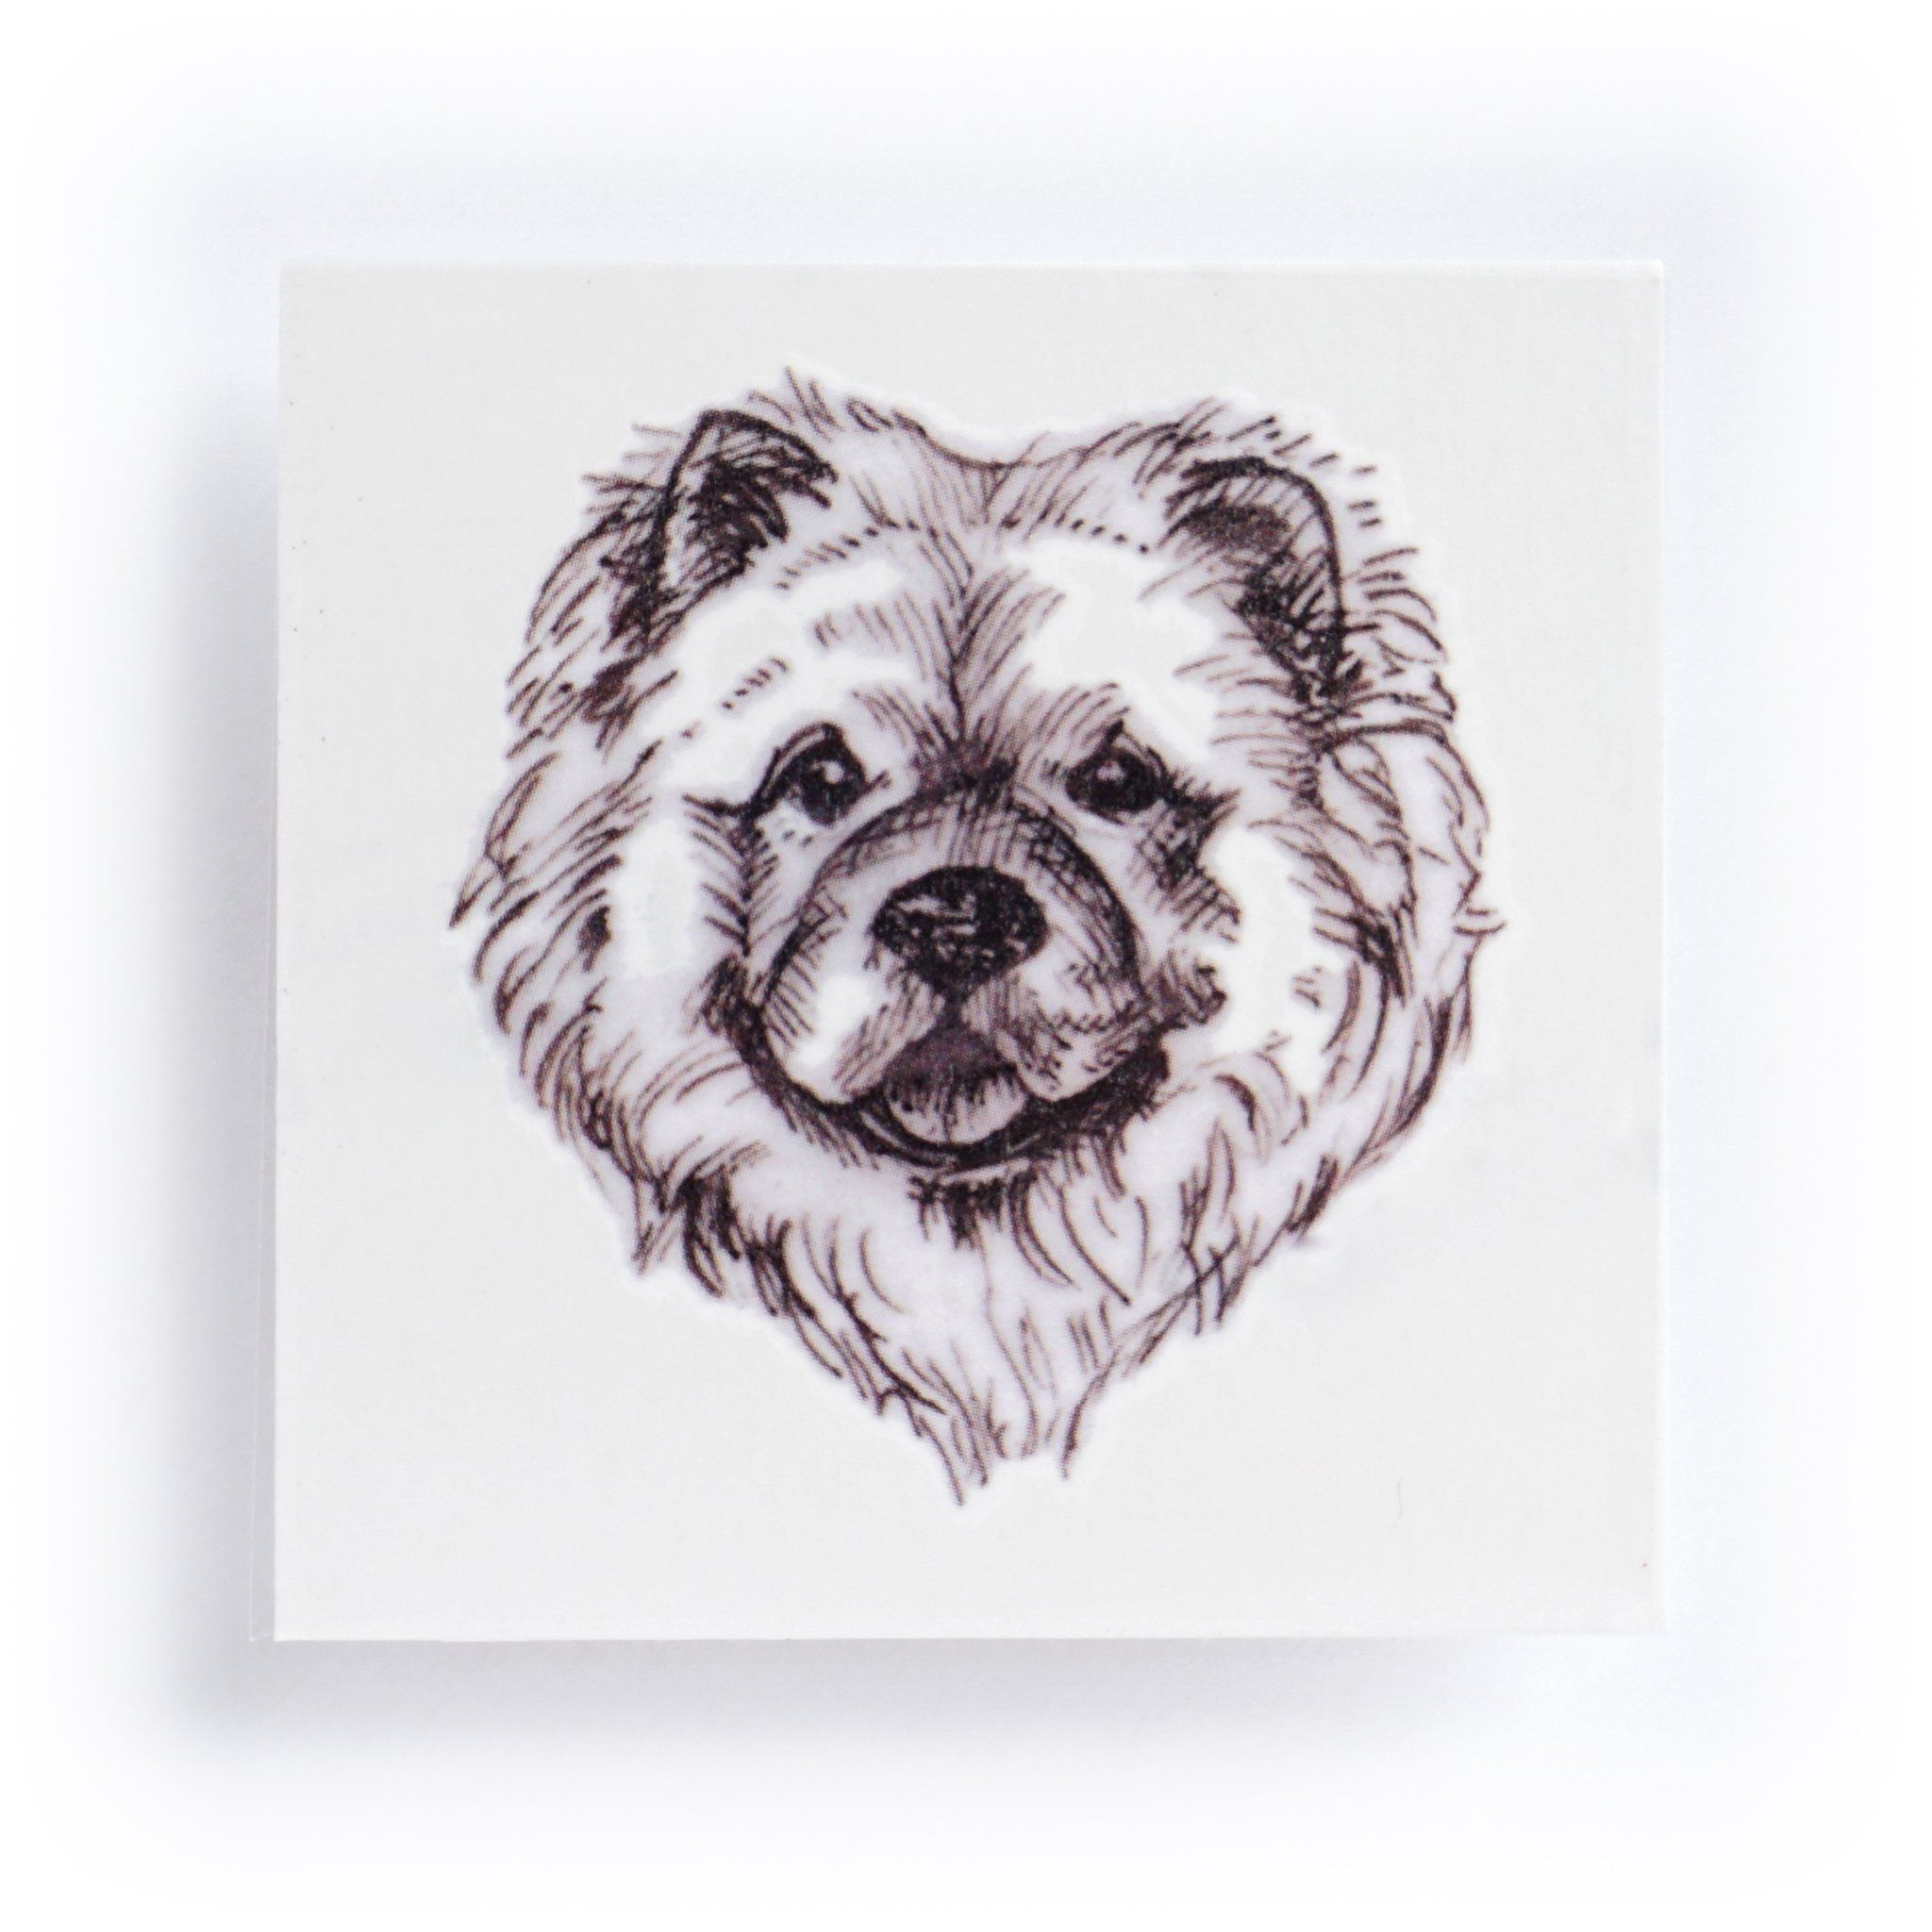 Mongrel Mixed Breed Dog Puppy Tattoo Dog Tattoos Dog Breeds